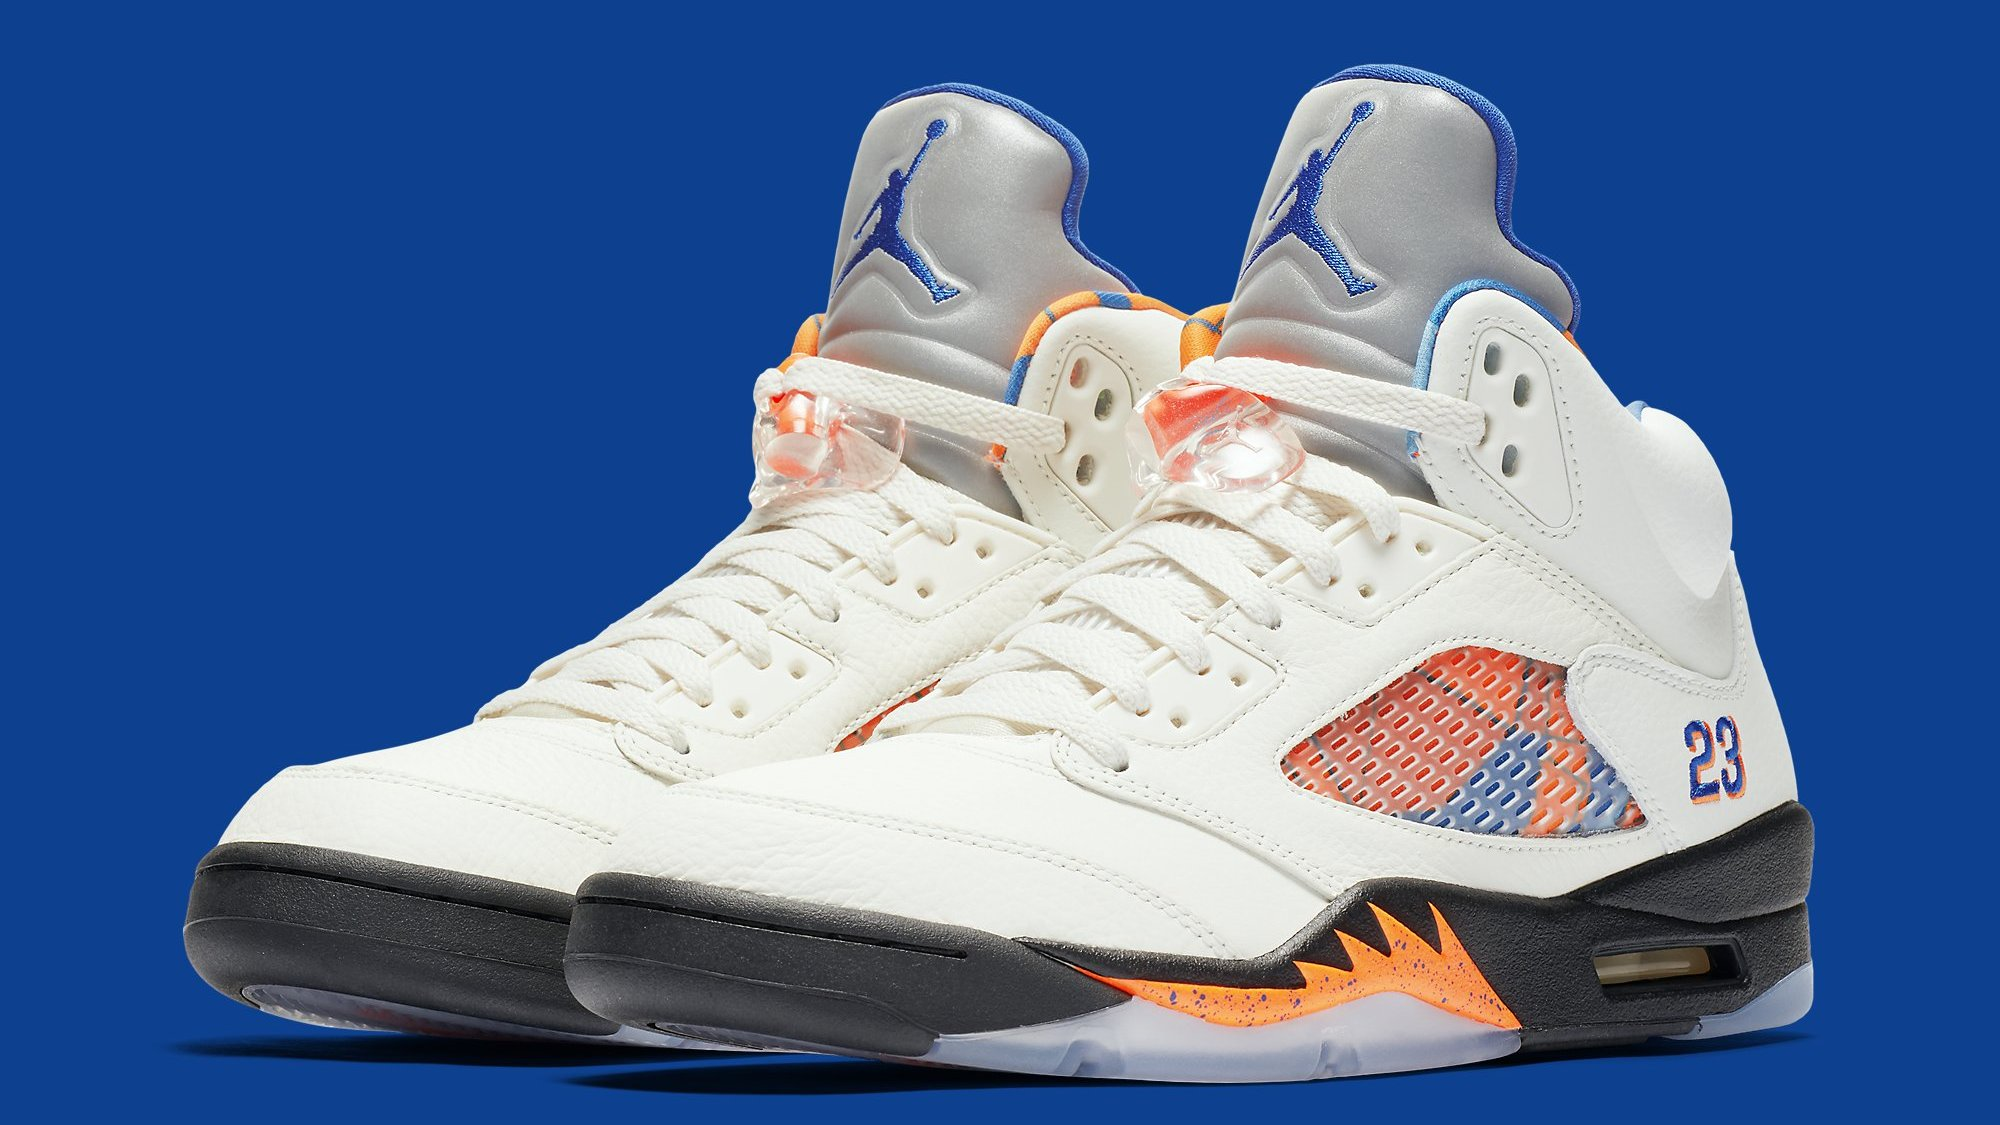 microscópico Grave Radar  Air Jordan 5 V Sail Orange Peel Black Hyper Royal Release Date 136027-148 |  Sole Collector